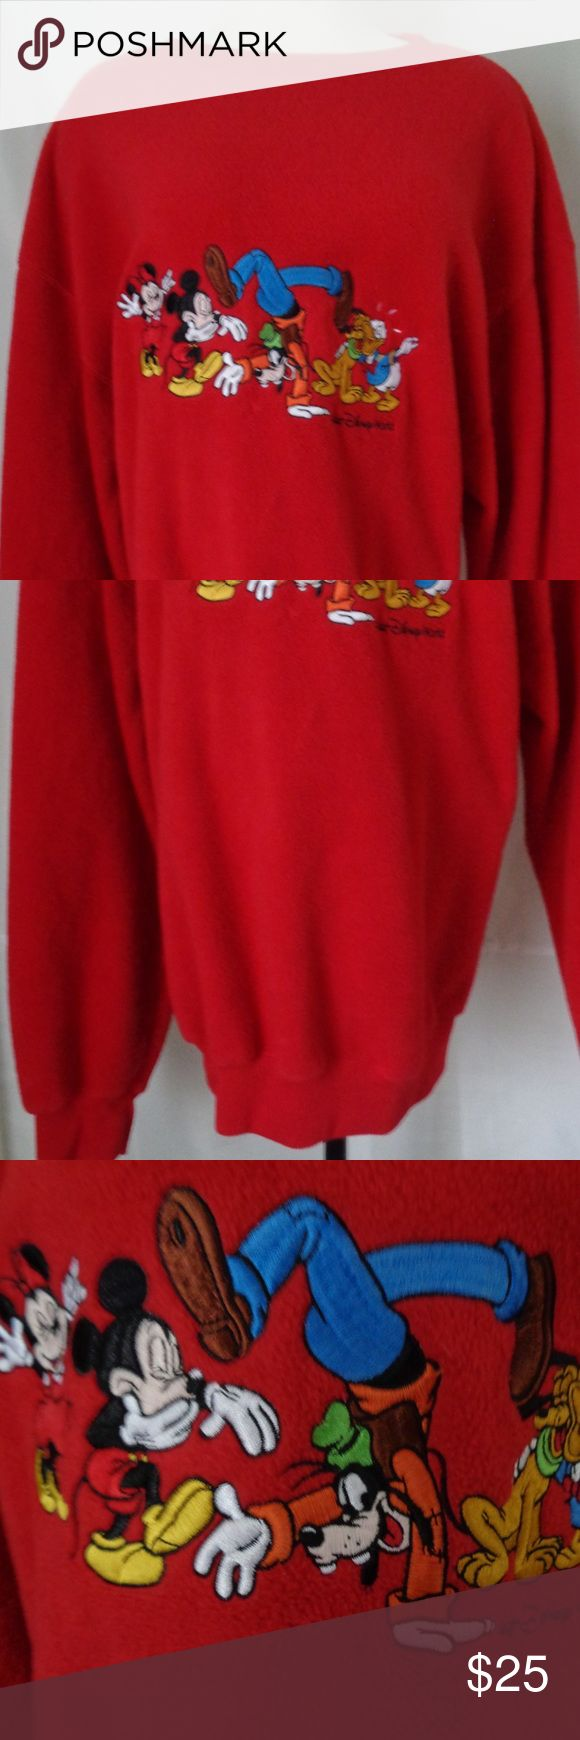 """Vintage Disney Red Fleece Sweatshirt XLarge  L13 Vintage Disney Red Fleece Sweatshirt   Embroidered Mickey Mouse , Minnie Mouse, Goofy,  Donald Duck and Pluto Characters  Walt Disney World tag and logo  Measurements  Armpit to Armpit 27 1/2"""" (flat)  Shoulder to Hem 30""""  Hem 20"""" (flat and unstretched)  Sleeve 26"""" (shoulder seam to cuff edge )   Excellent Pre Owned Condition. See description for measurements and pictures with zoom  L13 Disney Tops Sweatshirts & Hoodies"""